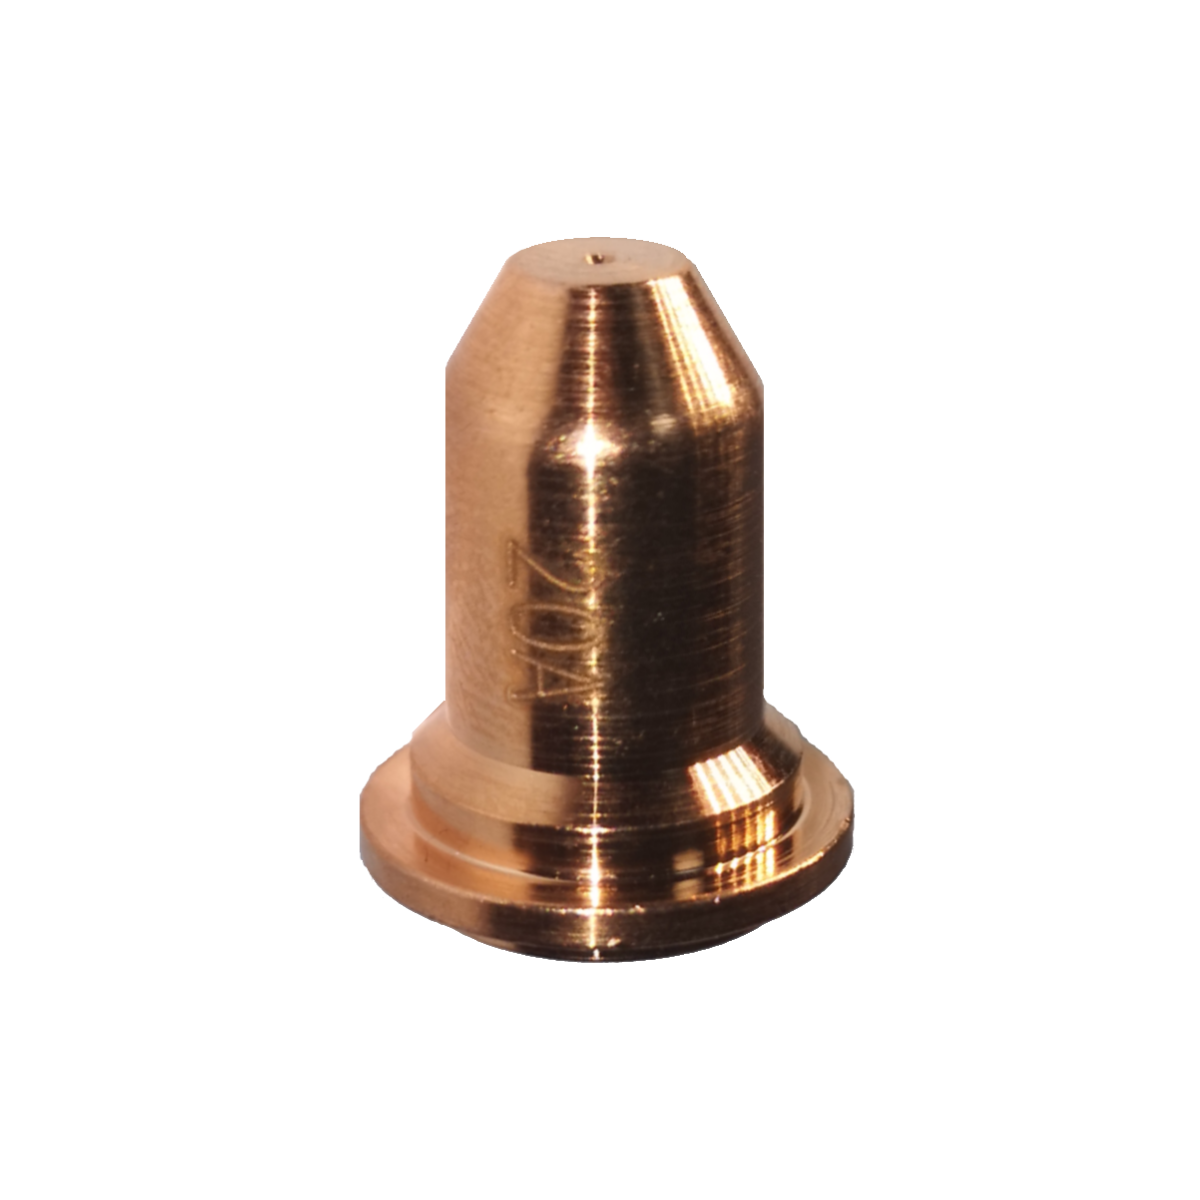 SWP Tip Contact Cutting 20-30A PC7005 | Tips for SWP Hand Torch PC7100H | toolforce.ie